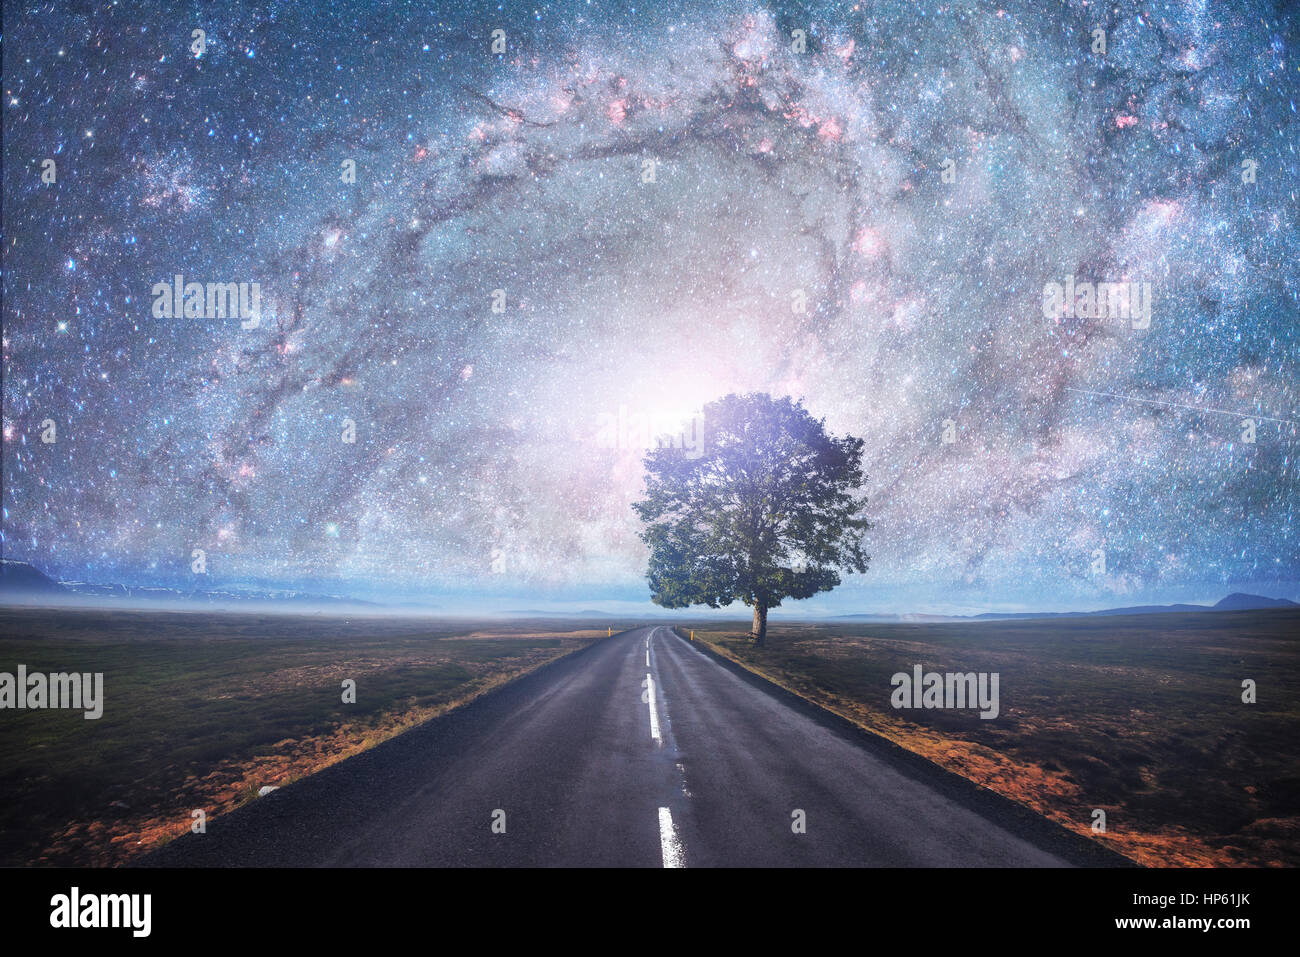 Asphalt road and lonely tree under a starry night sky - Stock Image